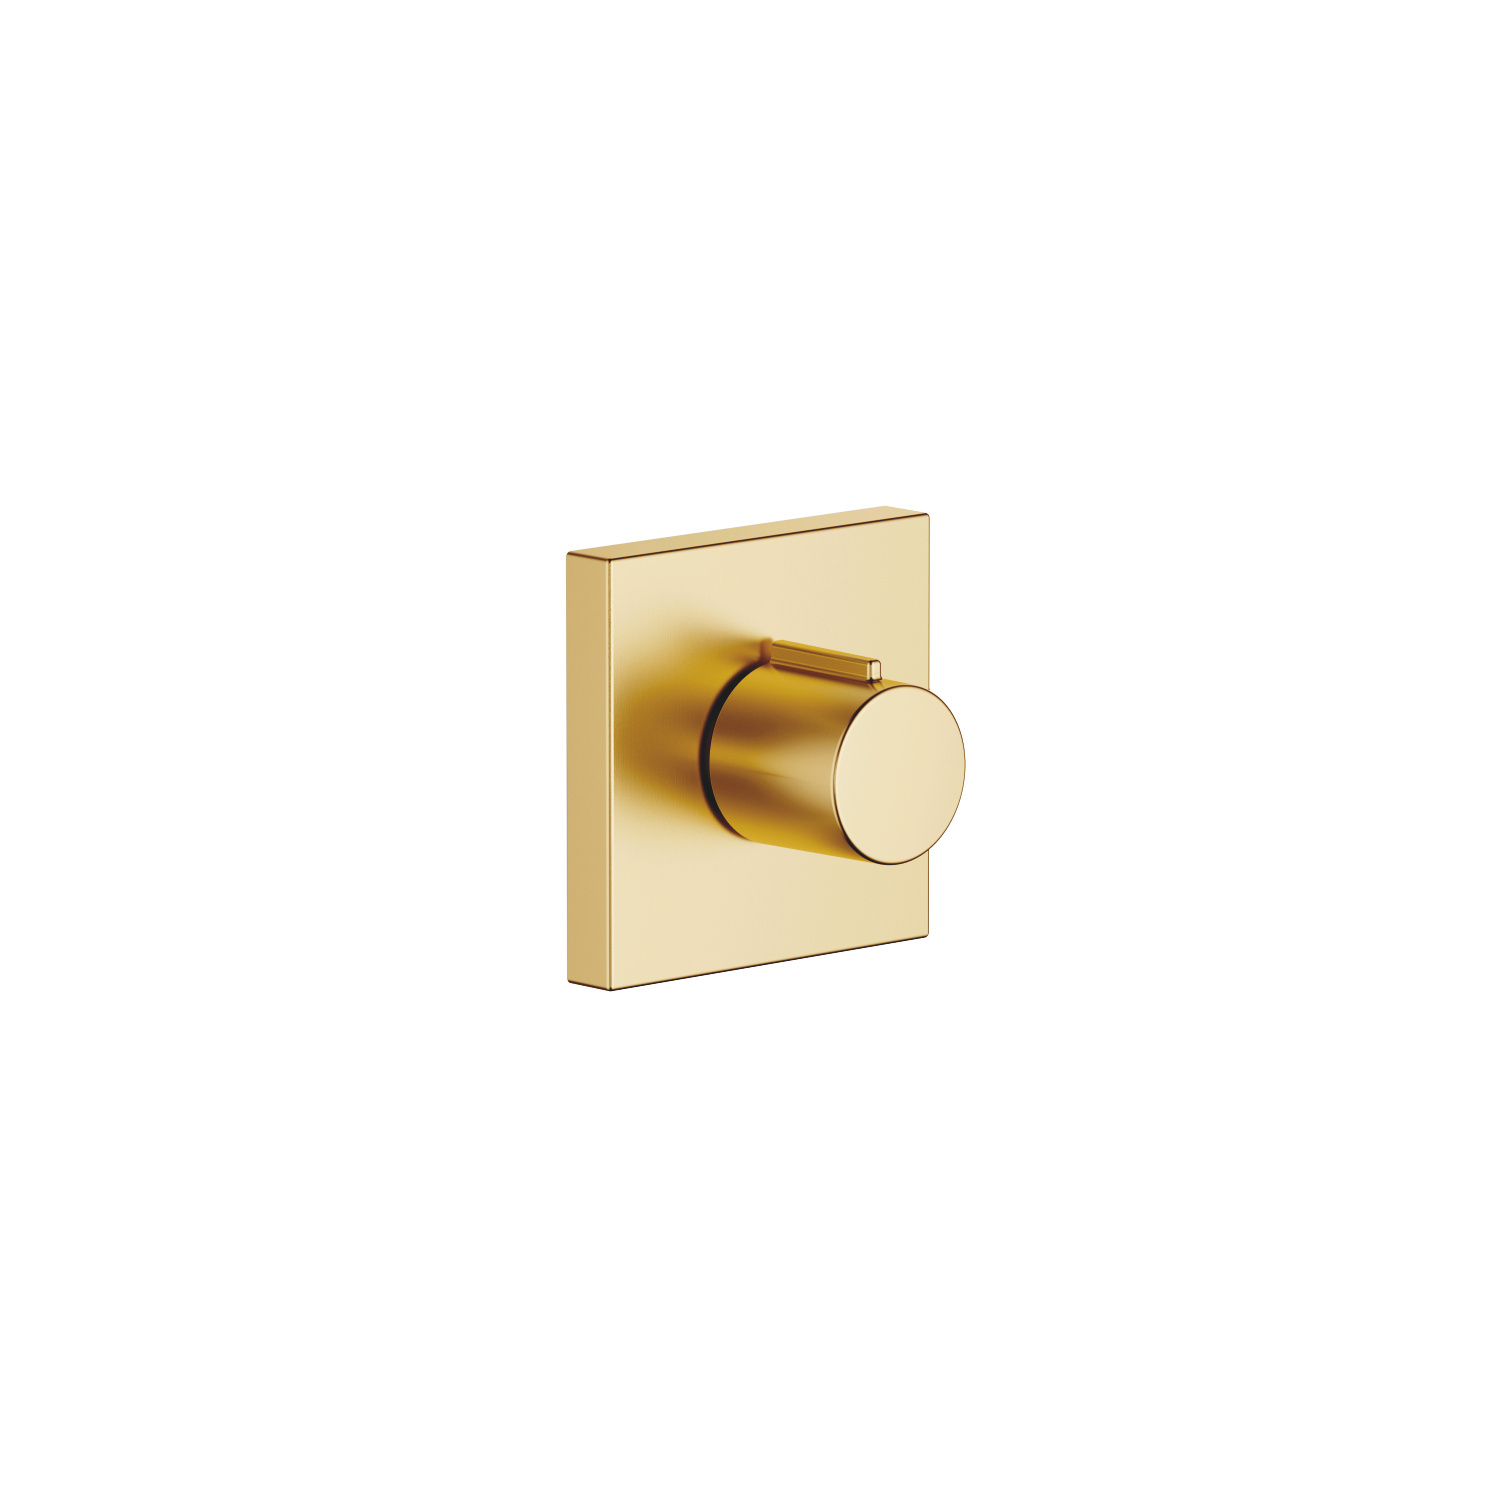 "Wall valve anti-clockwise closing 3/4"" - brushed Durabrass - 36 608 980-28"